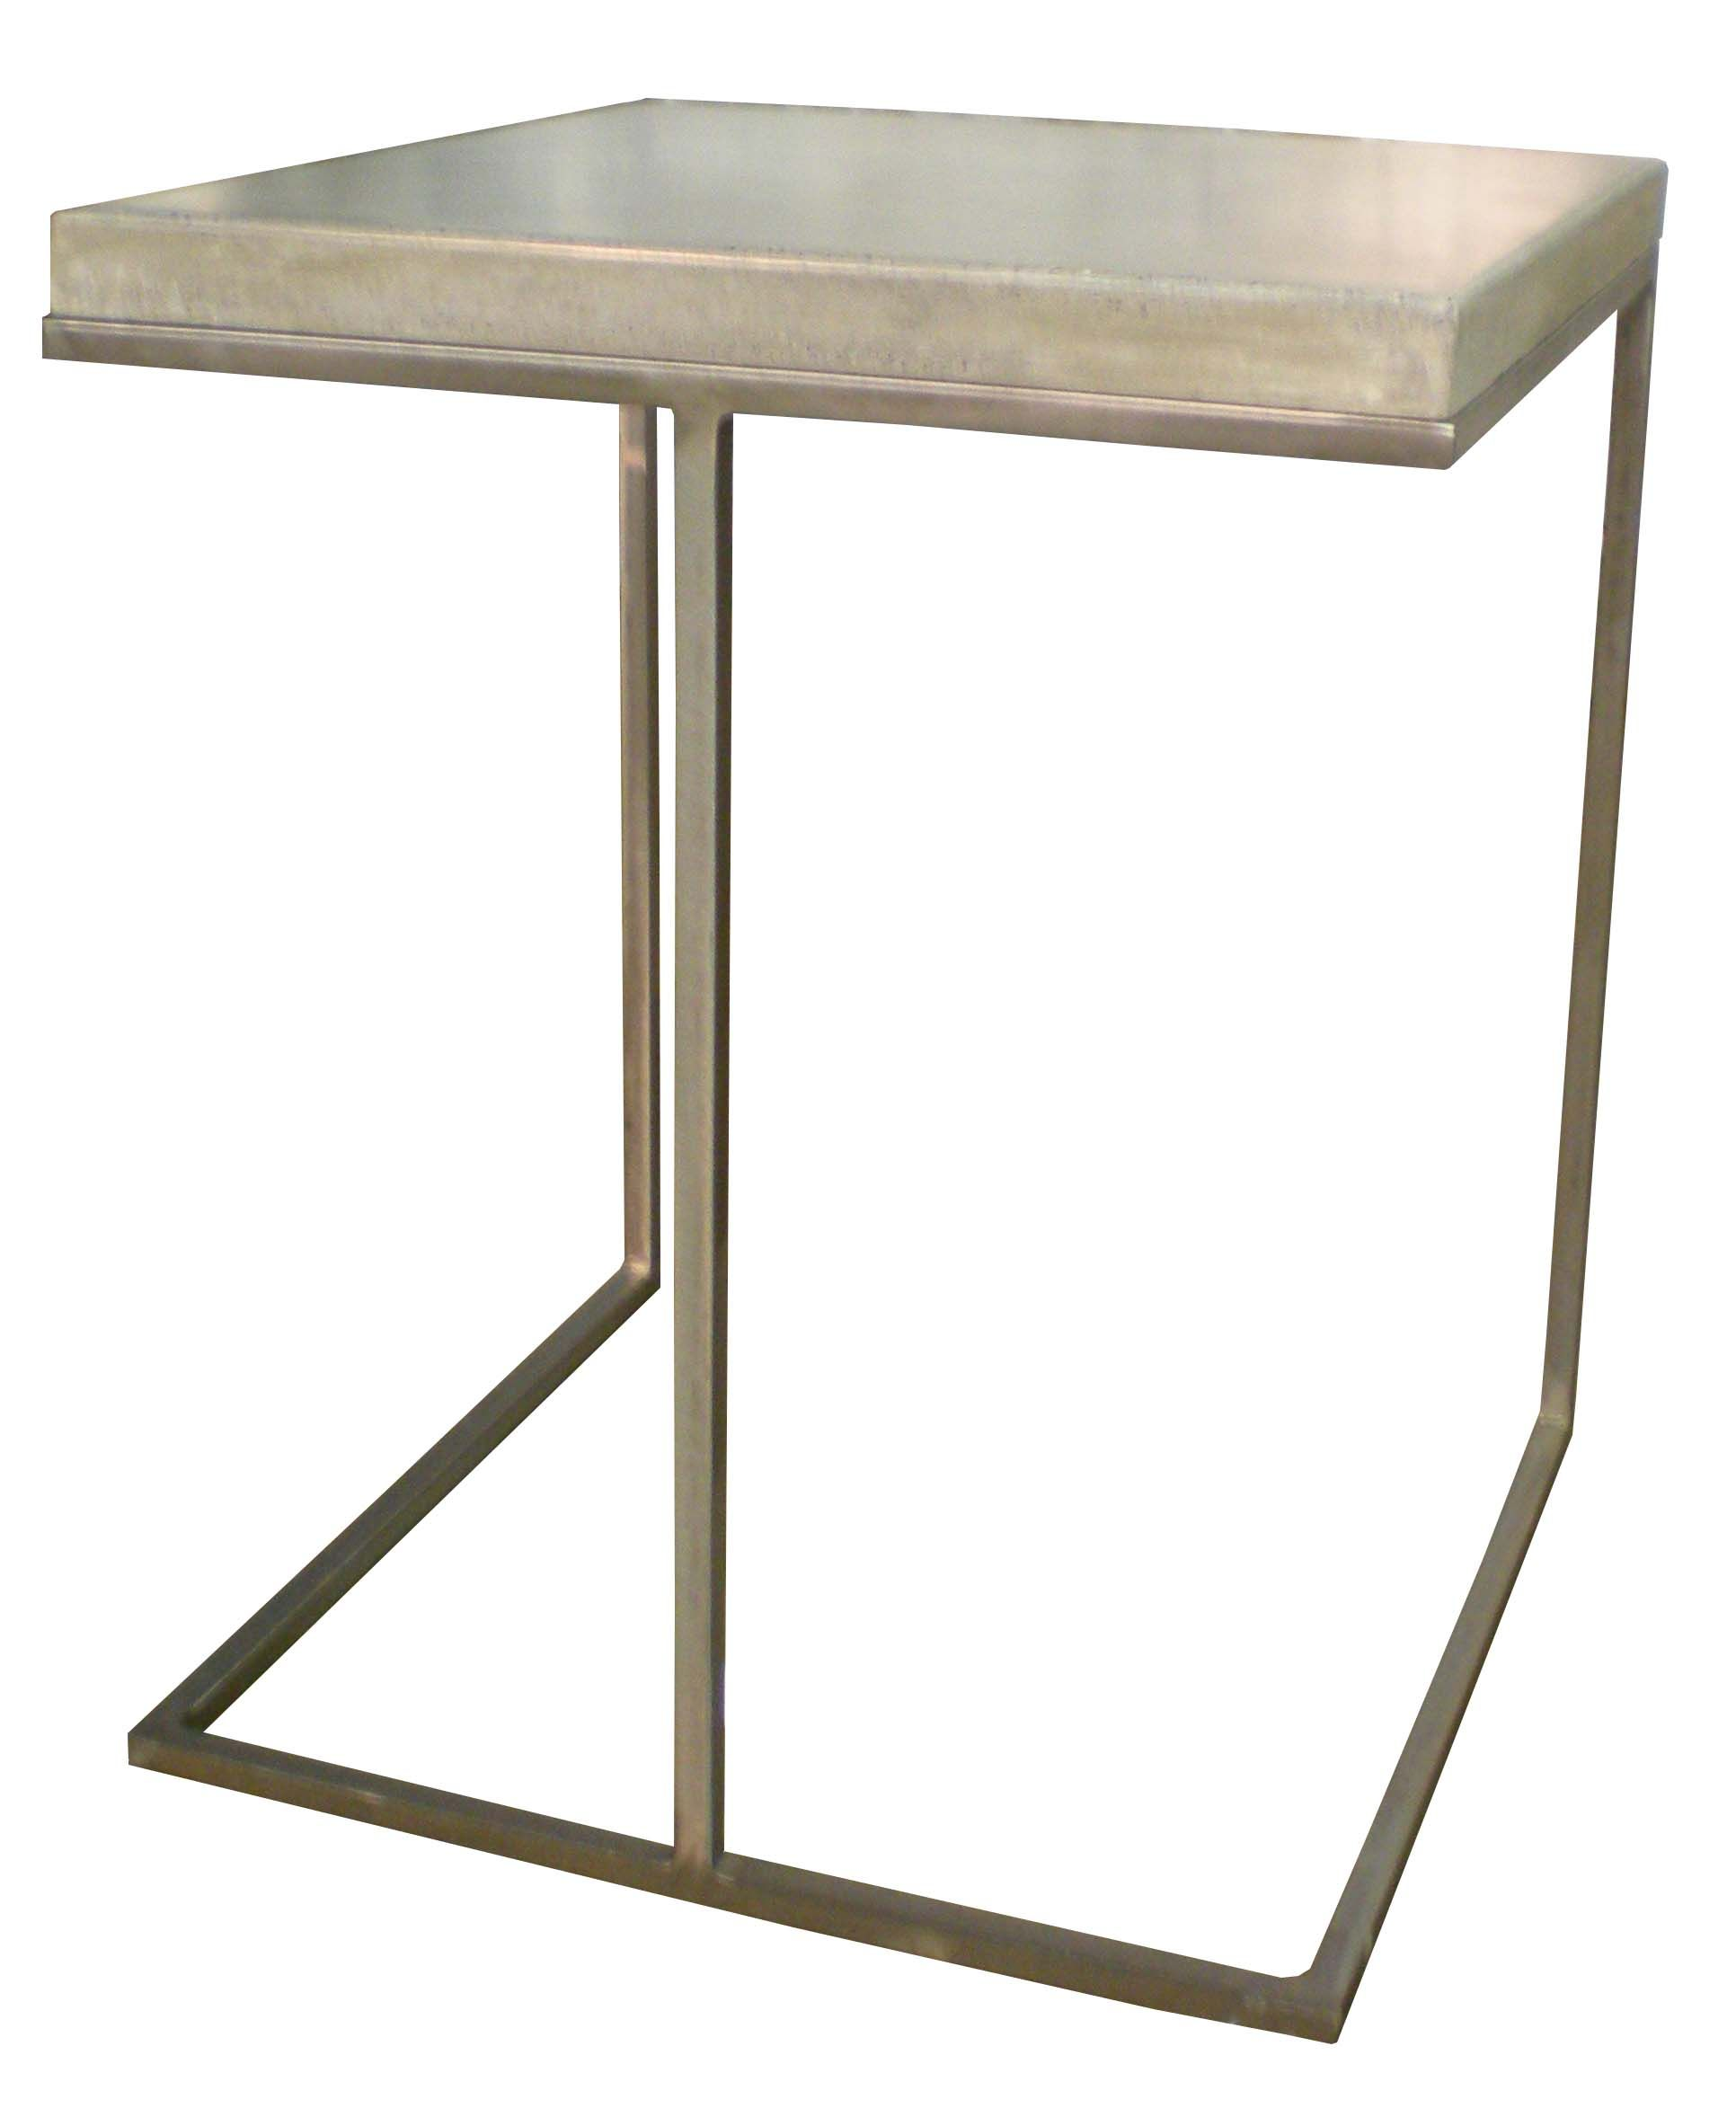 Iron Side Tables For Living Room Bradley 39francis 39 Contemporary Side Table In Warm Platinum